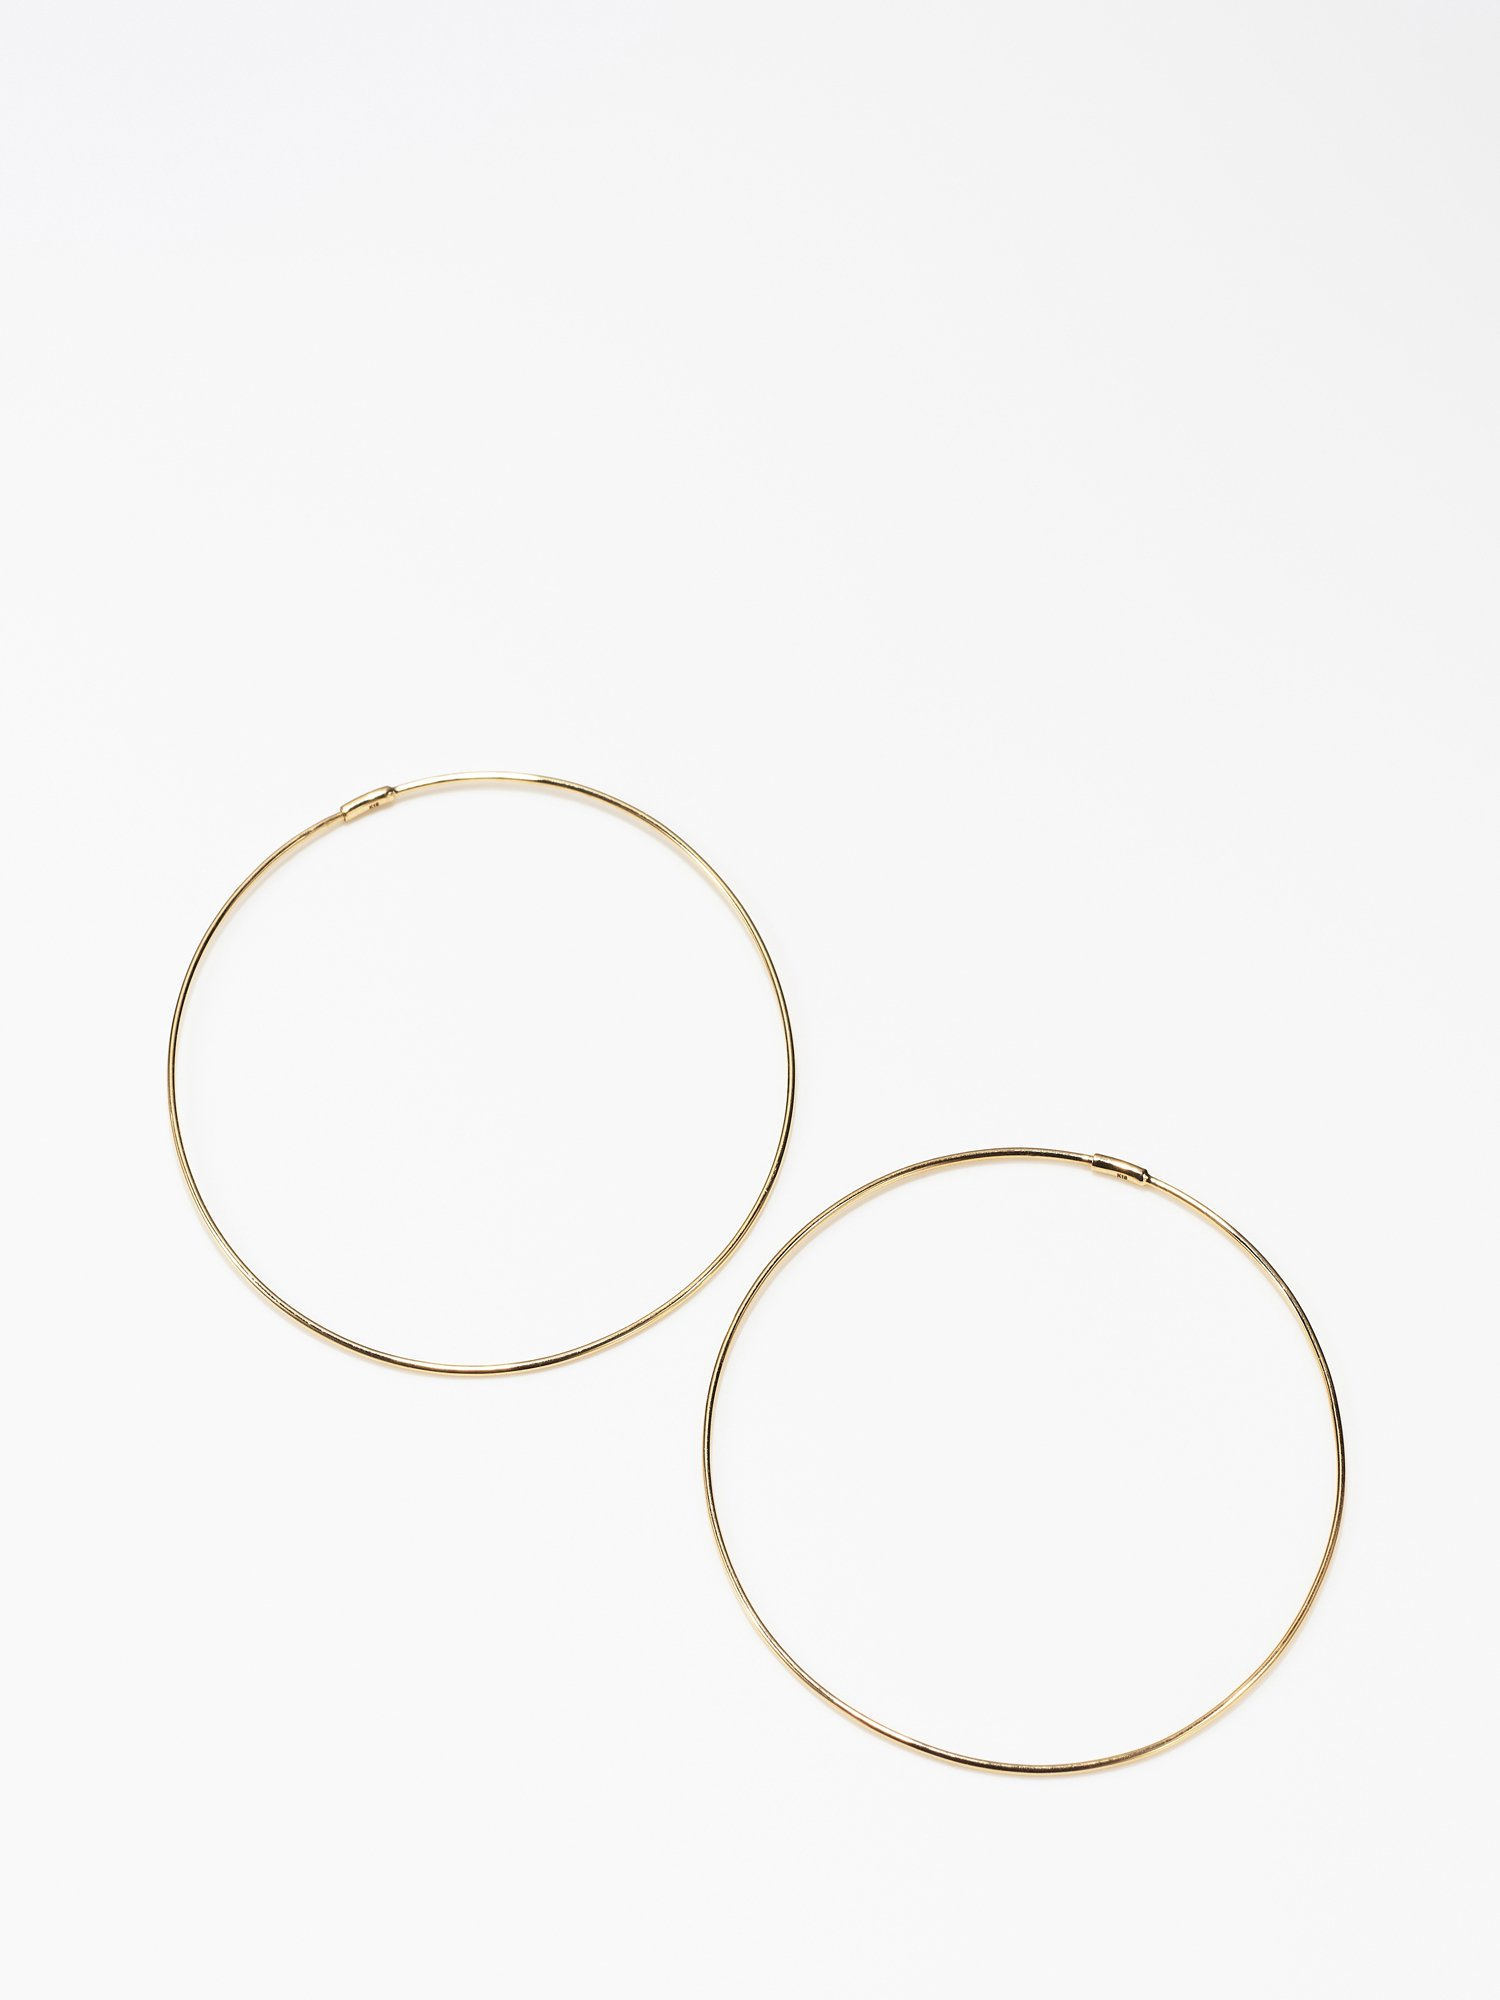 SOPHISTICATED VINTAGE / Solid hoop earrings / 45mm